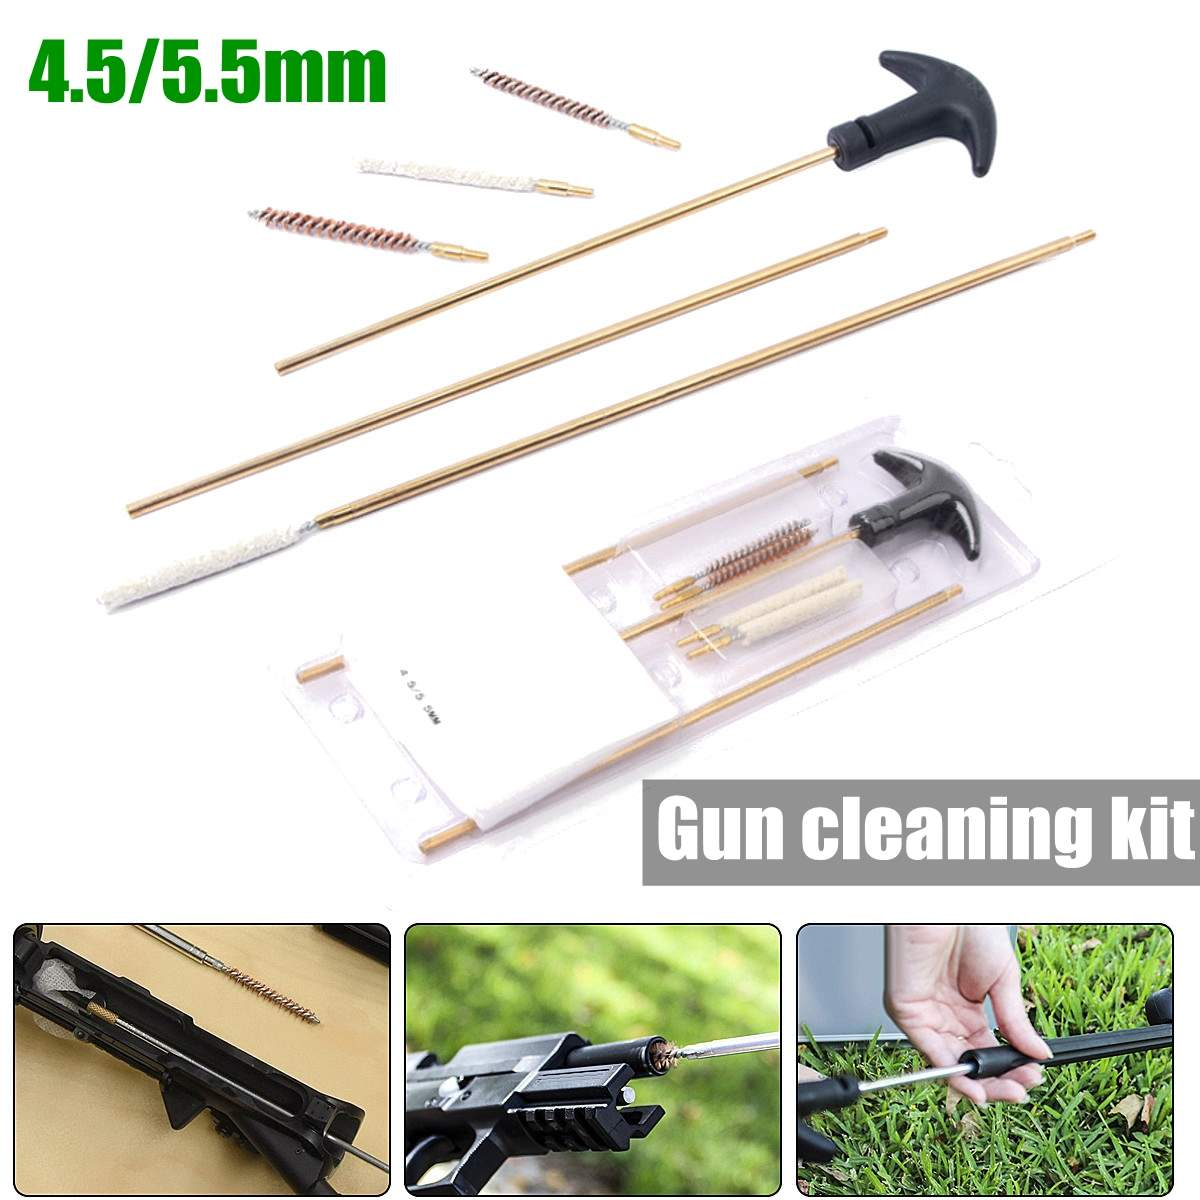 4.5/5.5mm cleaning kit tube brusher Hunting G un Cleaning Kit Rifle Cleaner Convenient Rilfe Accessories Durable